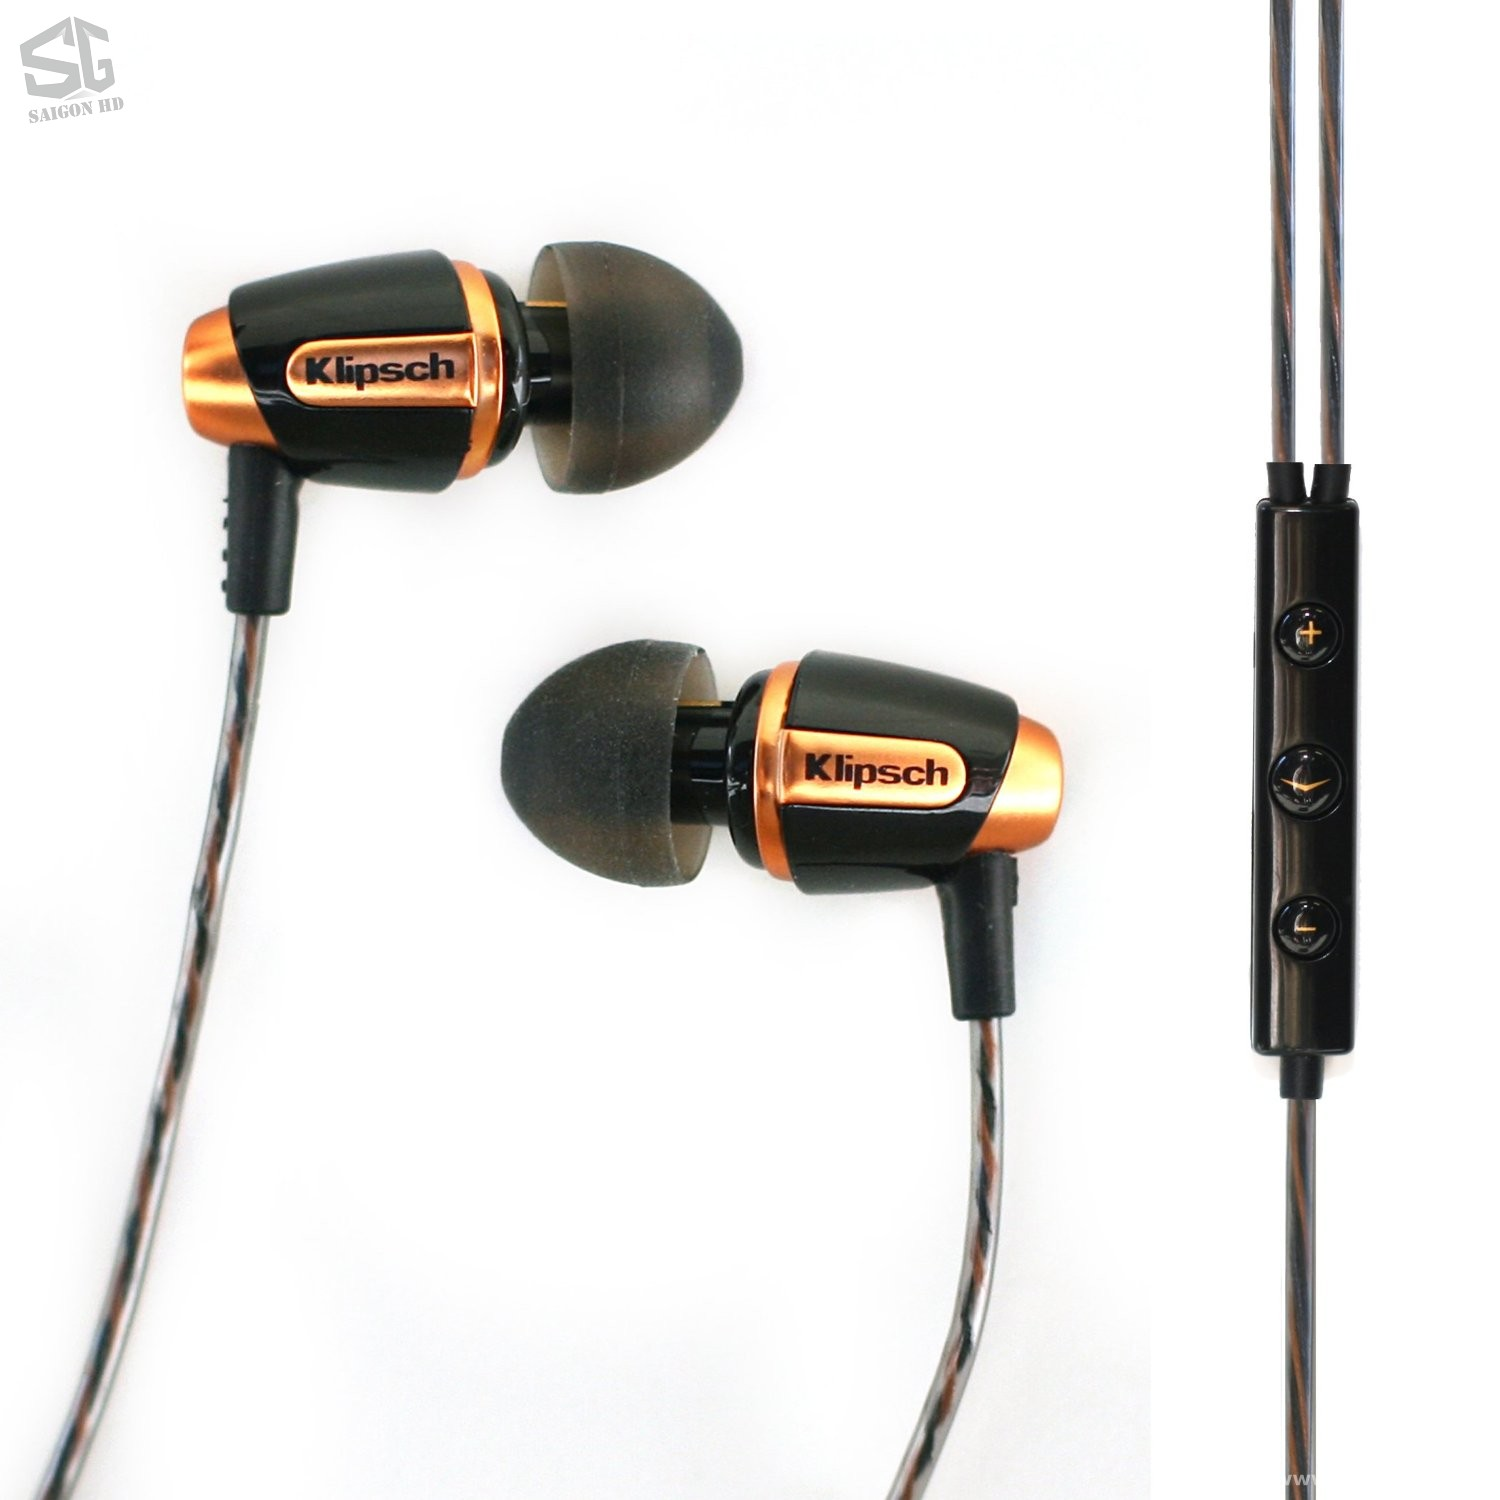 TAI NGHE KLIPSCH REFERENCE S4i BLACK HEADSET